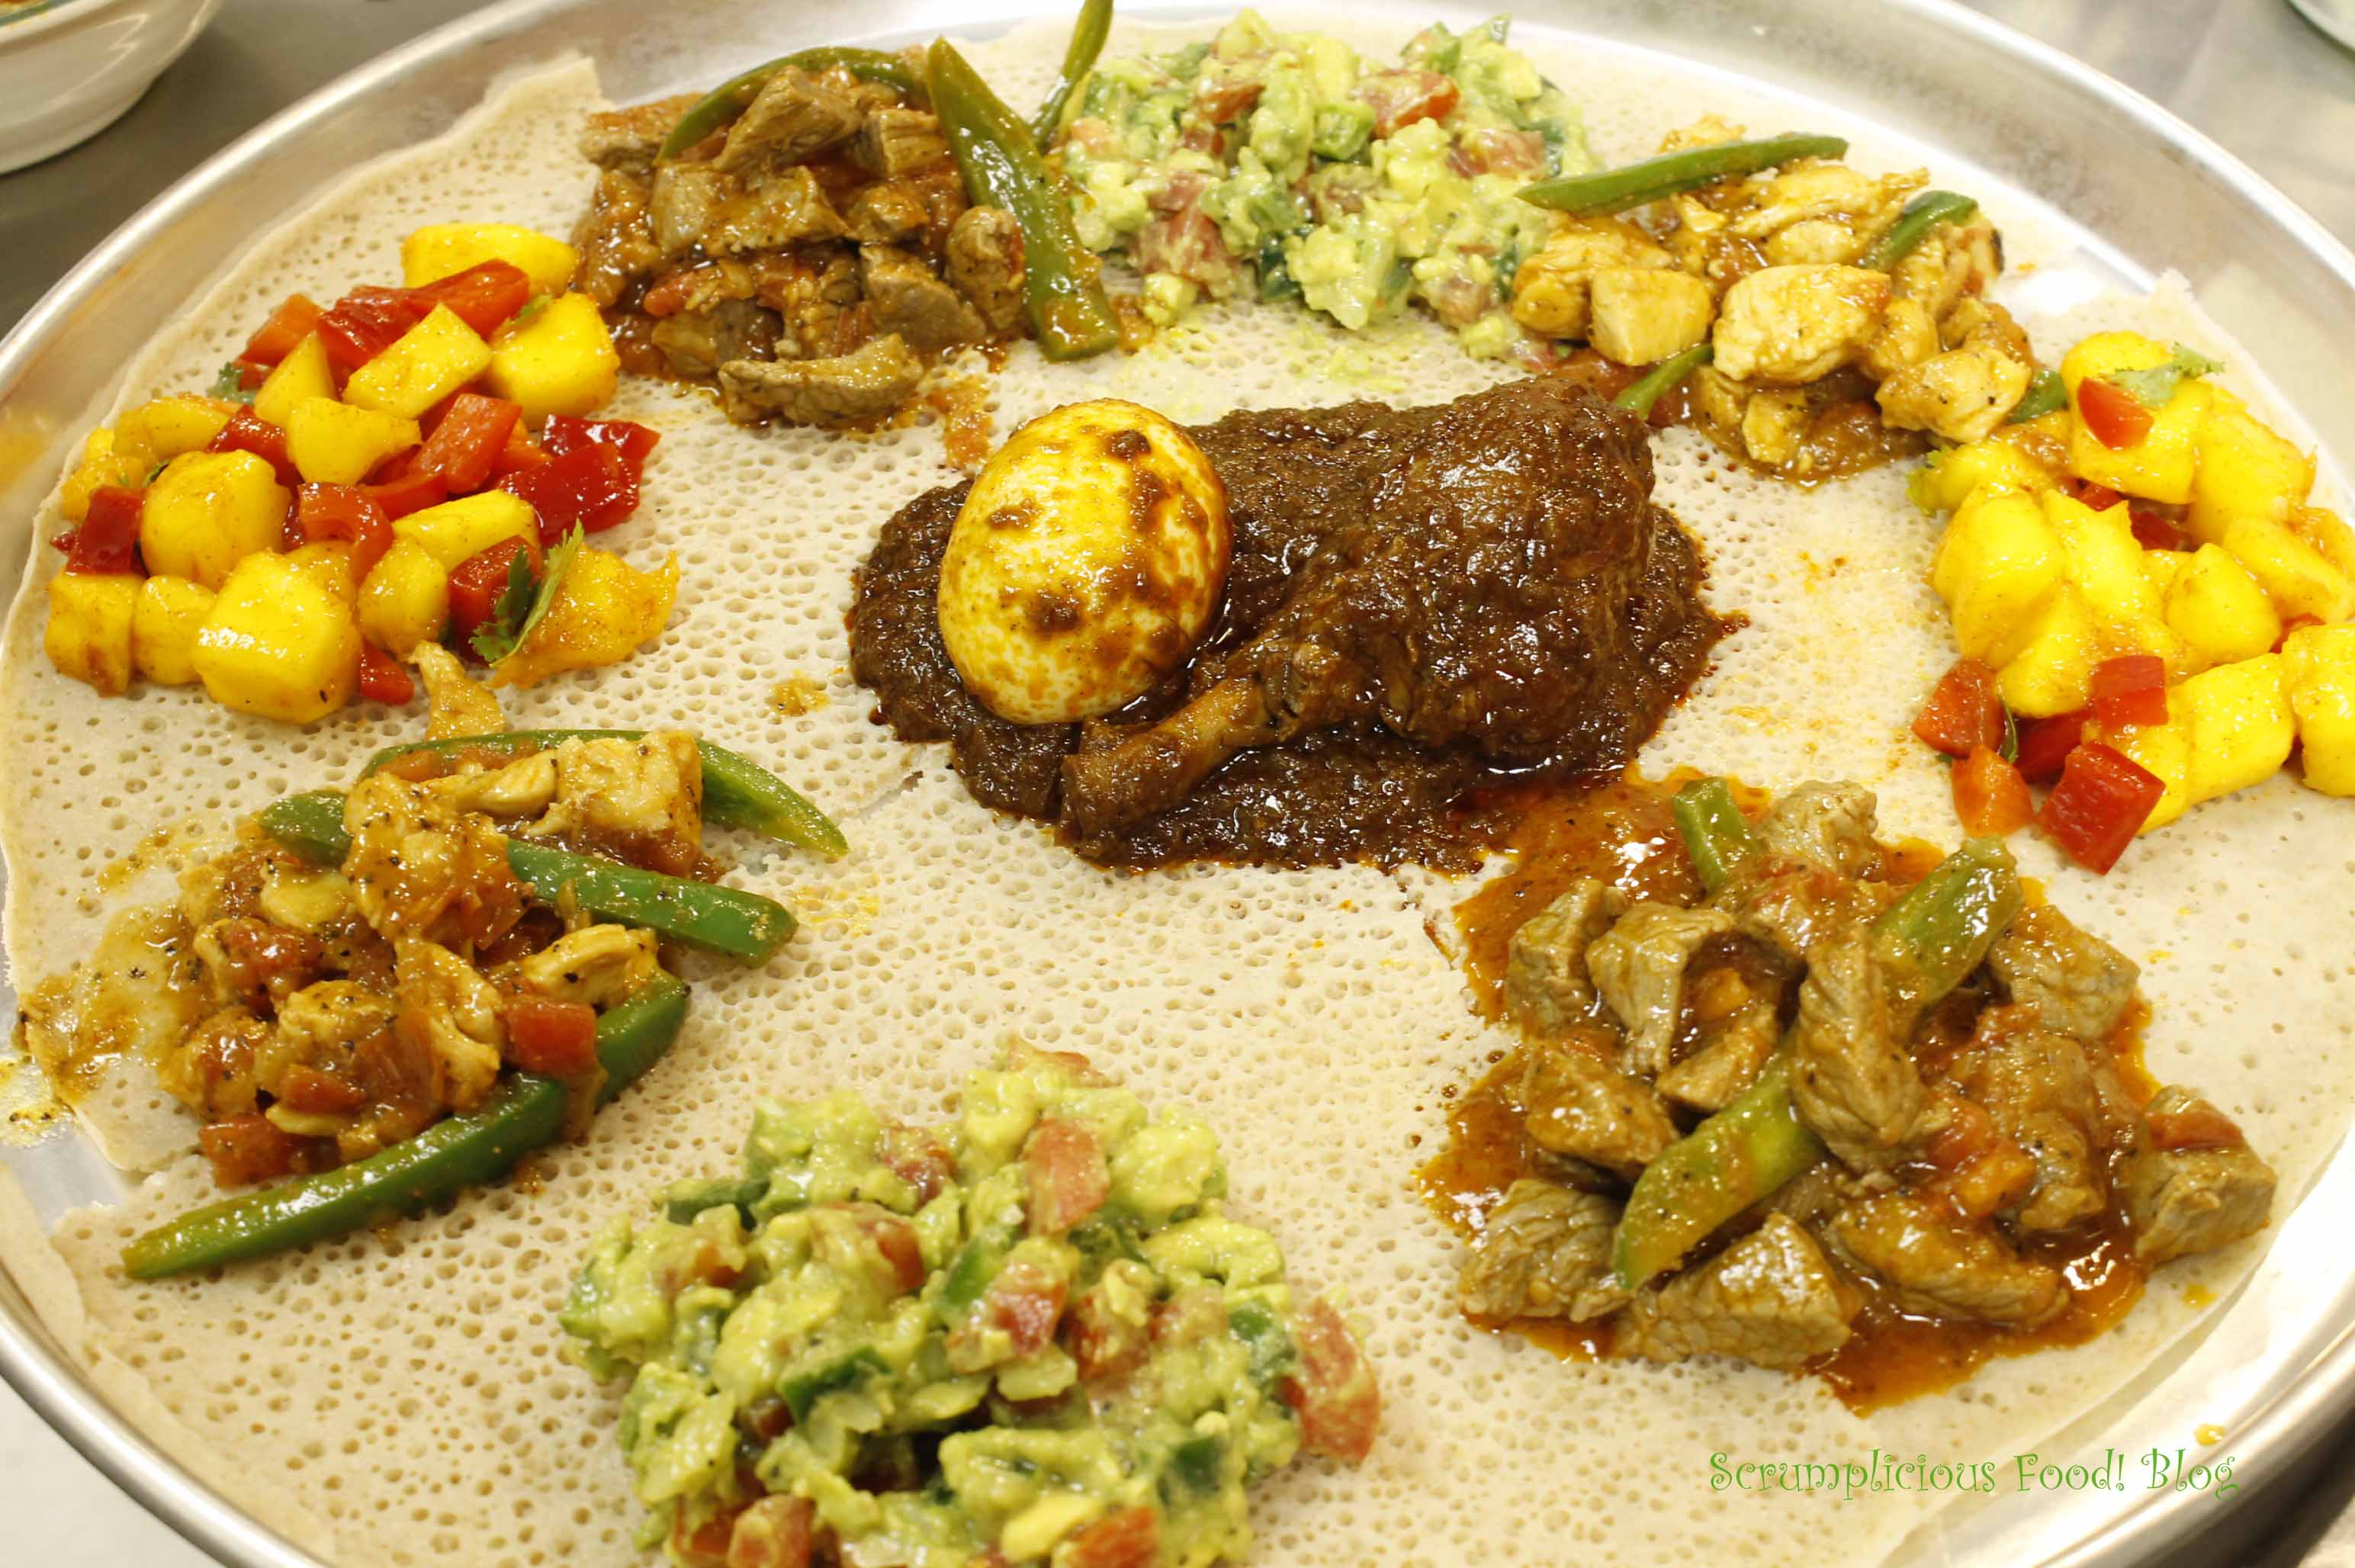 Delicious Ethiopian and Kenyan cuisine now available at